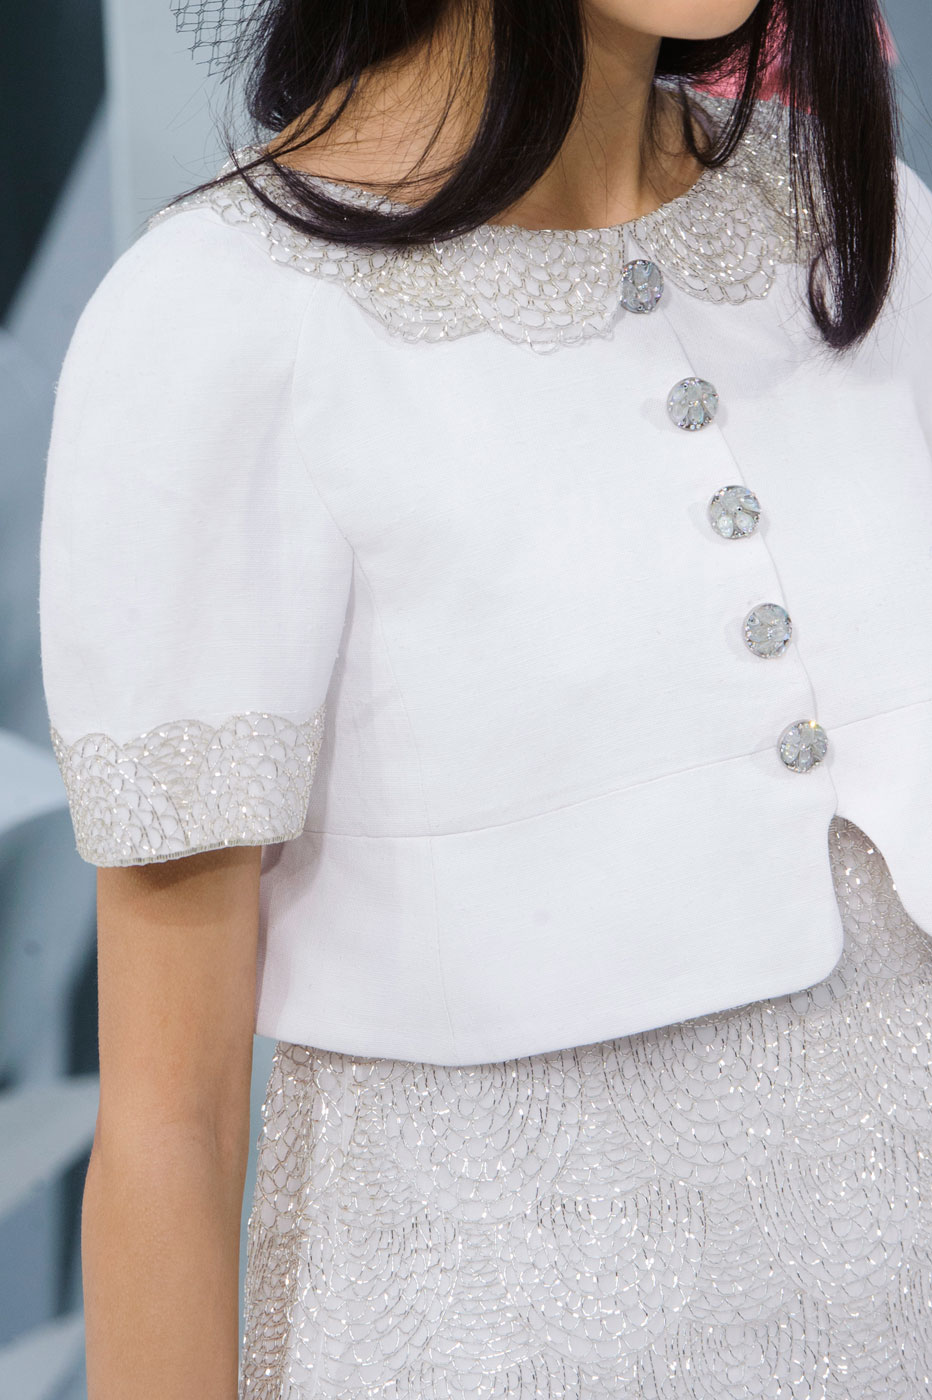 Chanel-fashion-runway-show-close-ups-haute-couture-paris-spring-summer-2015-the-impression-113